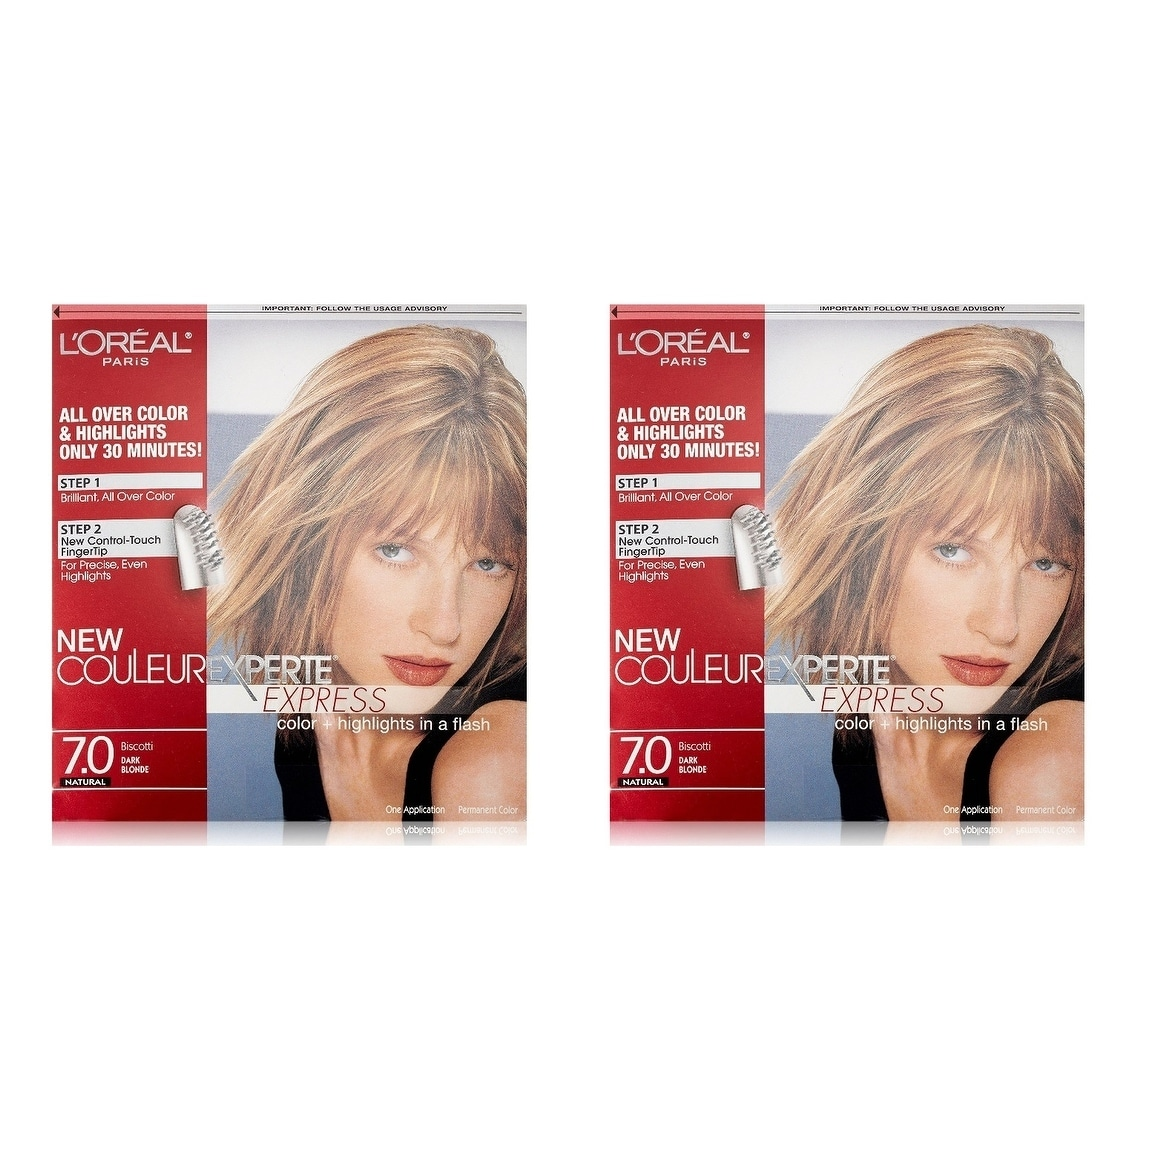 Shop Loreal Paris Couleur Experte Express Hair Color Highlights